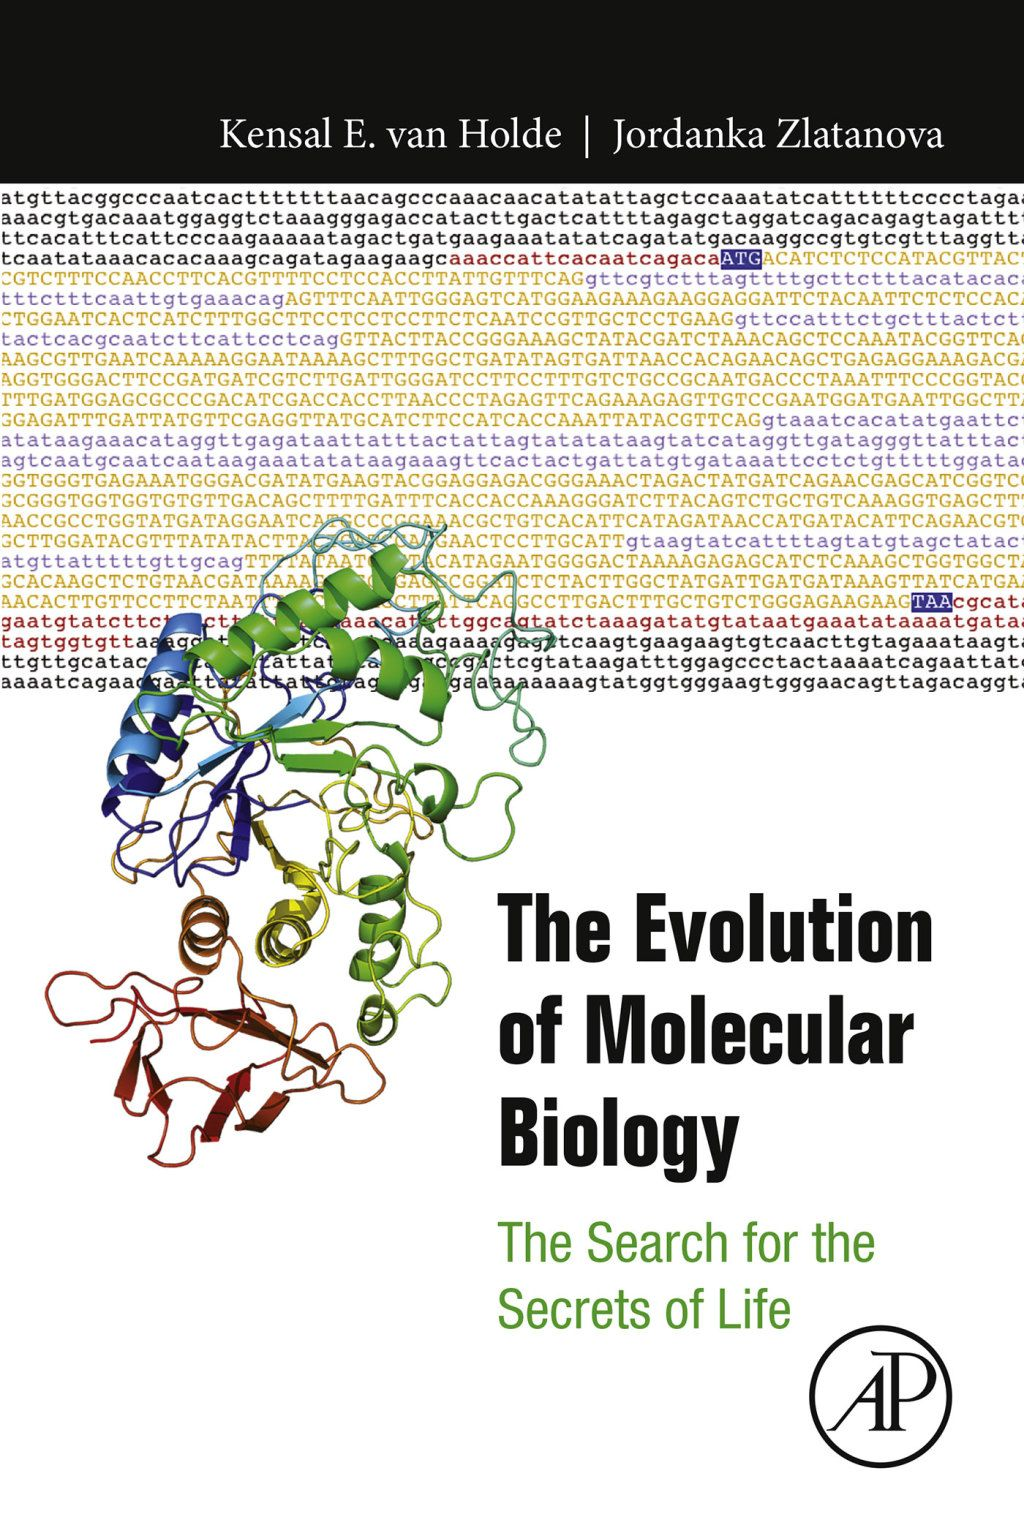 The Evolution Of Molecular Biology Ebook With Images